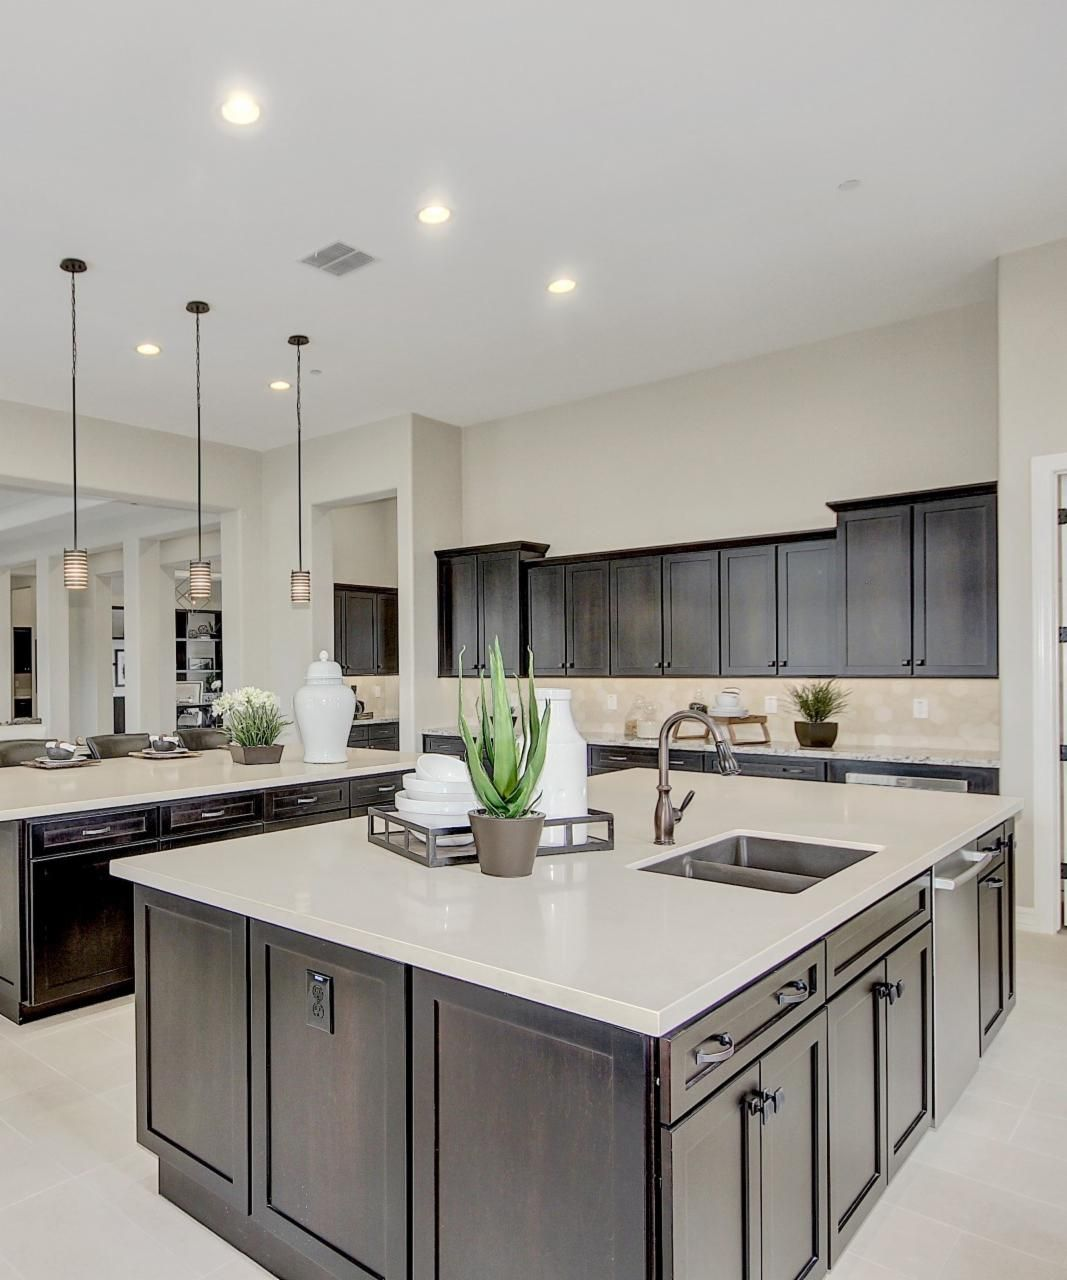 In a kitchen this big, you'll never run out of room to